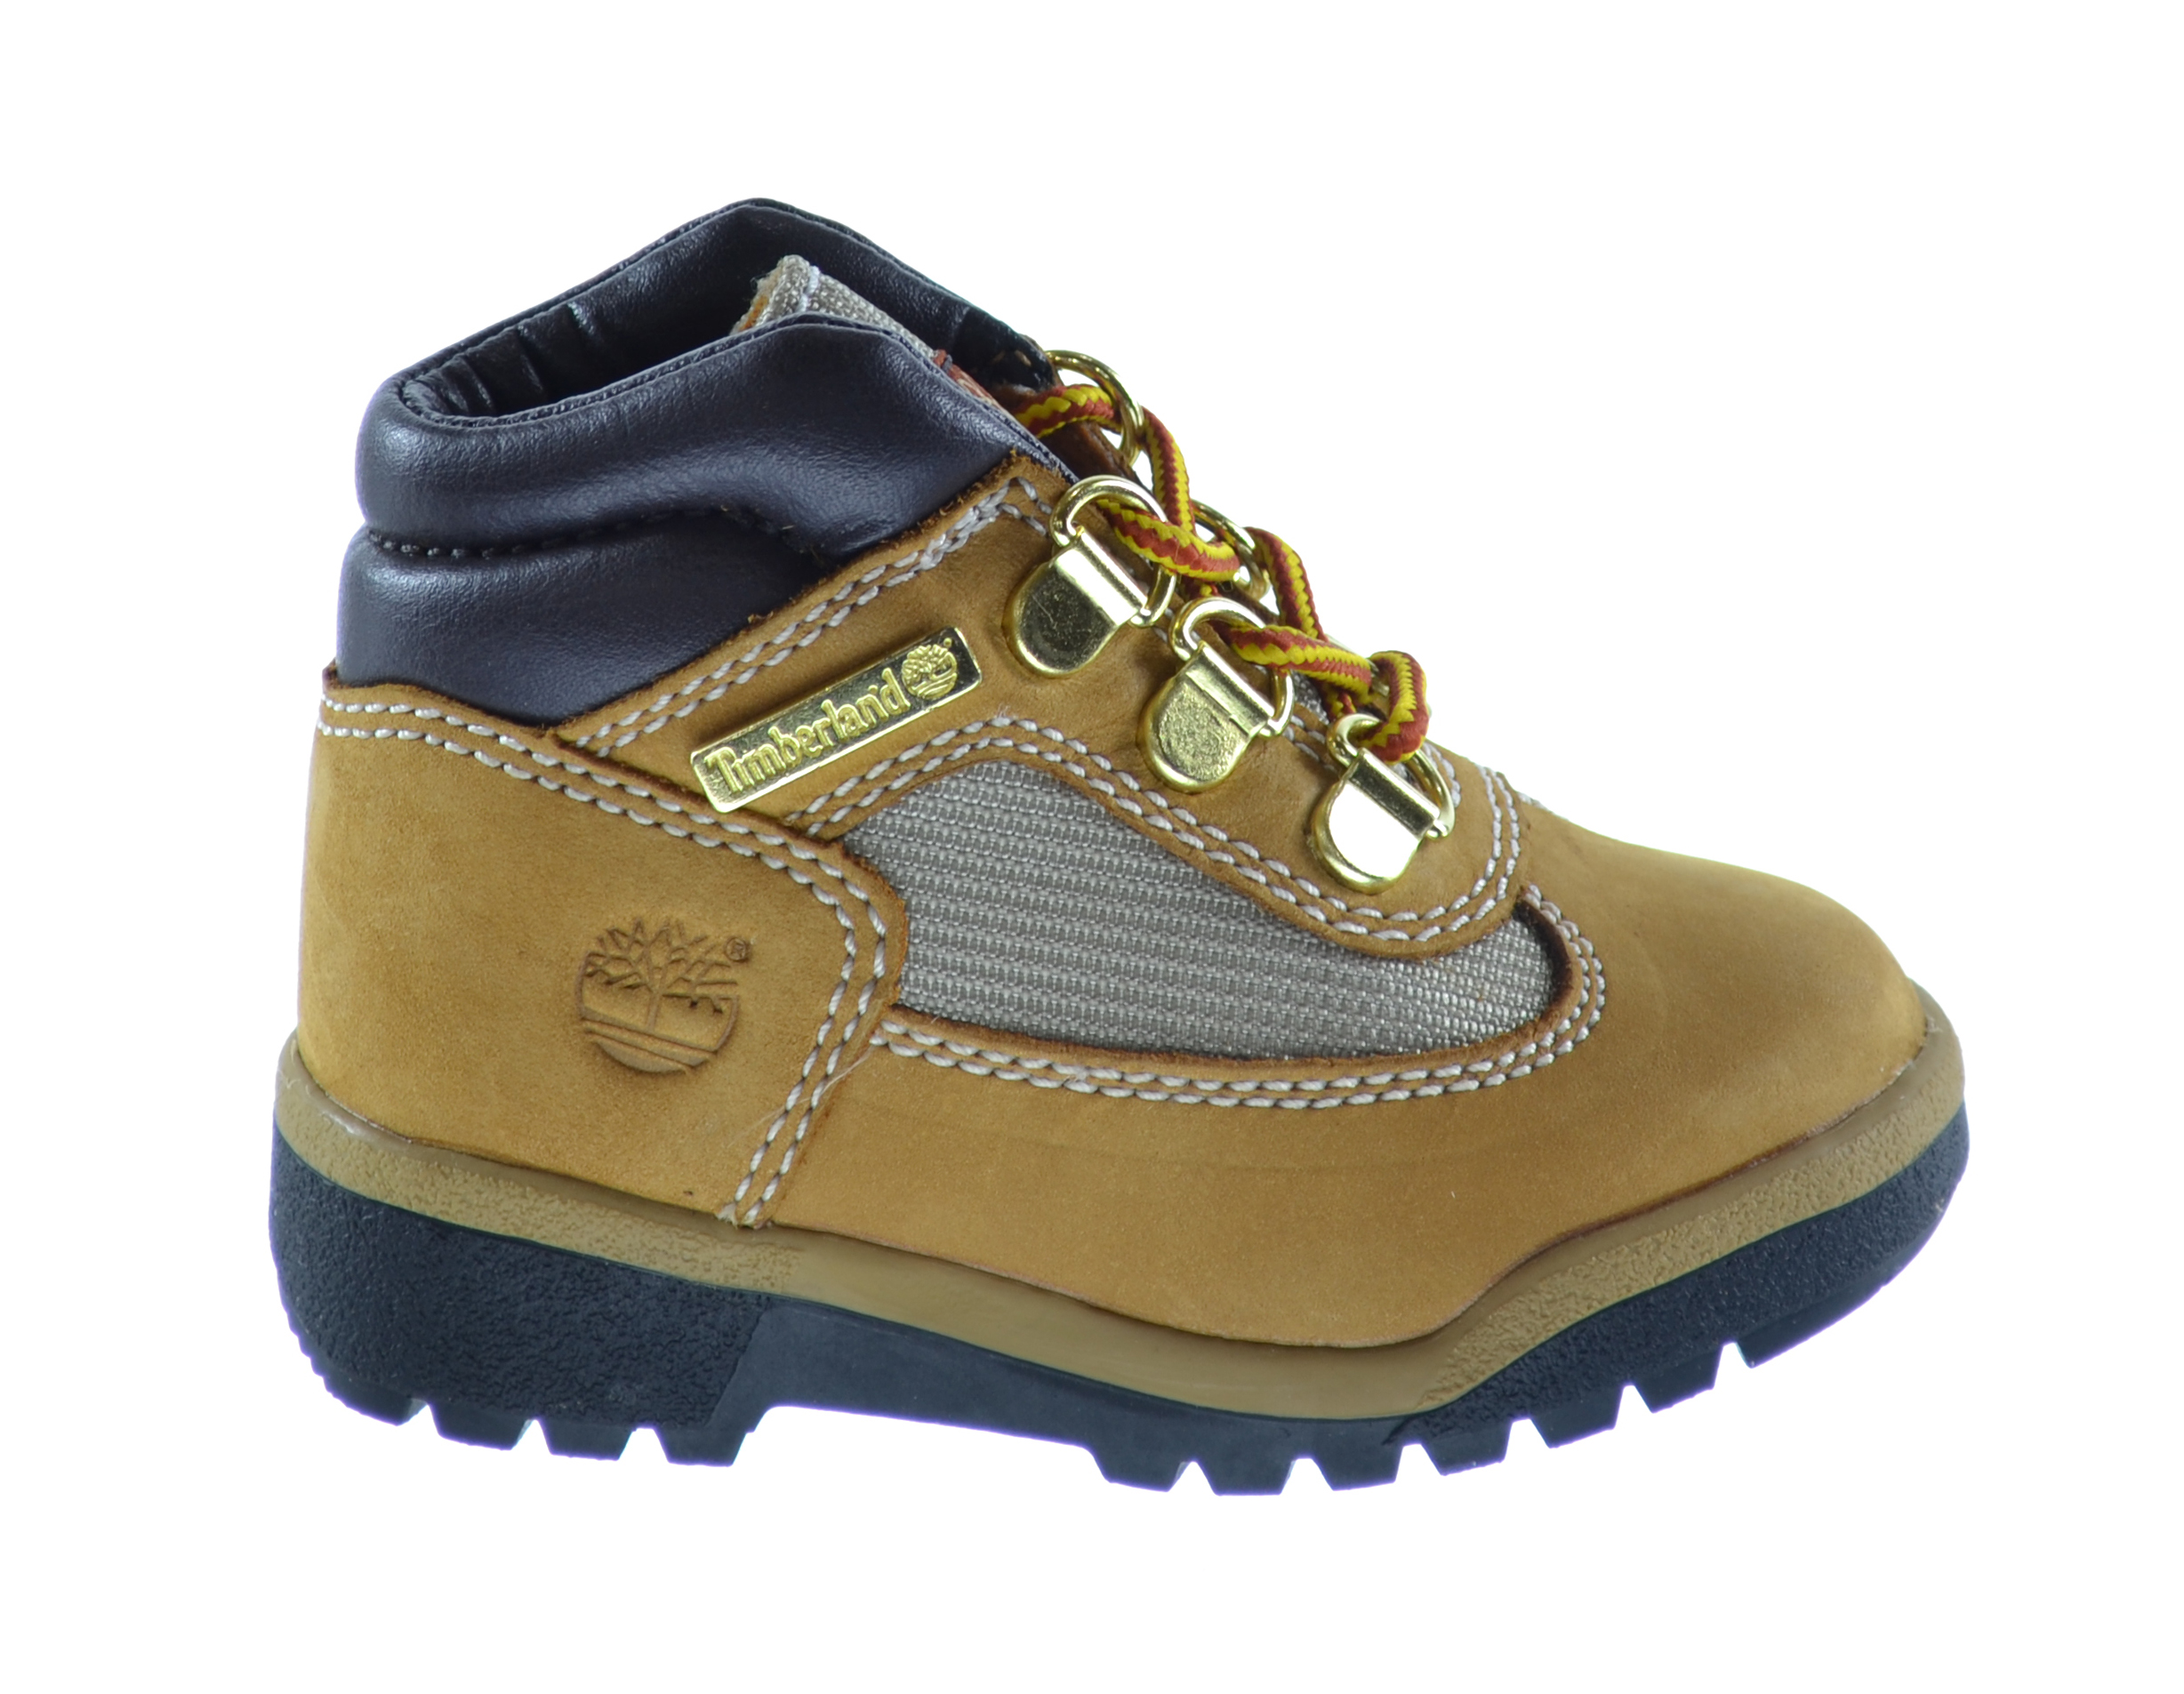 K Timberland Field Boot Leather and Fabric Field Toddler//Little Kid//Big Kid